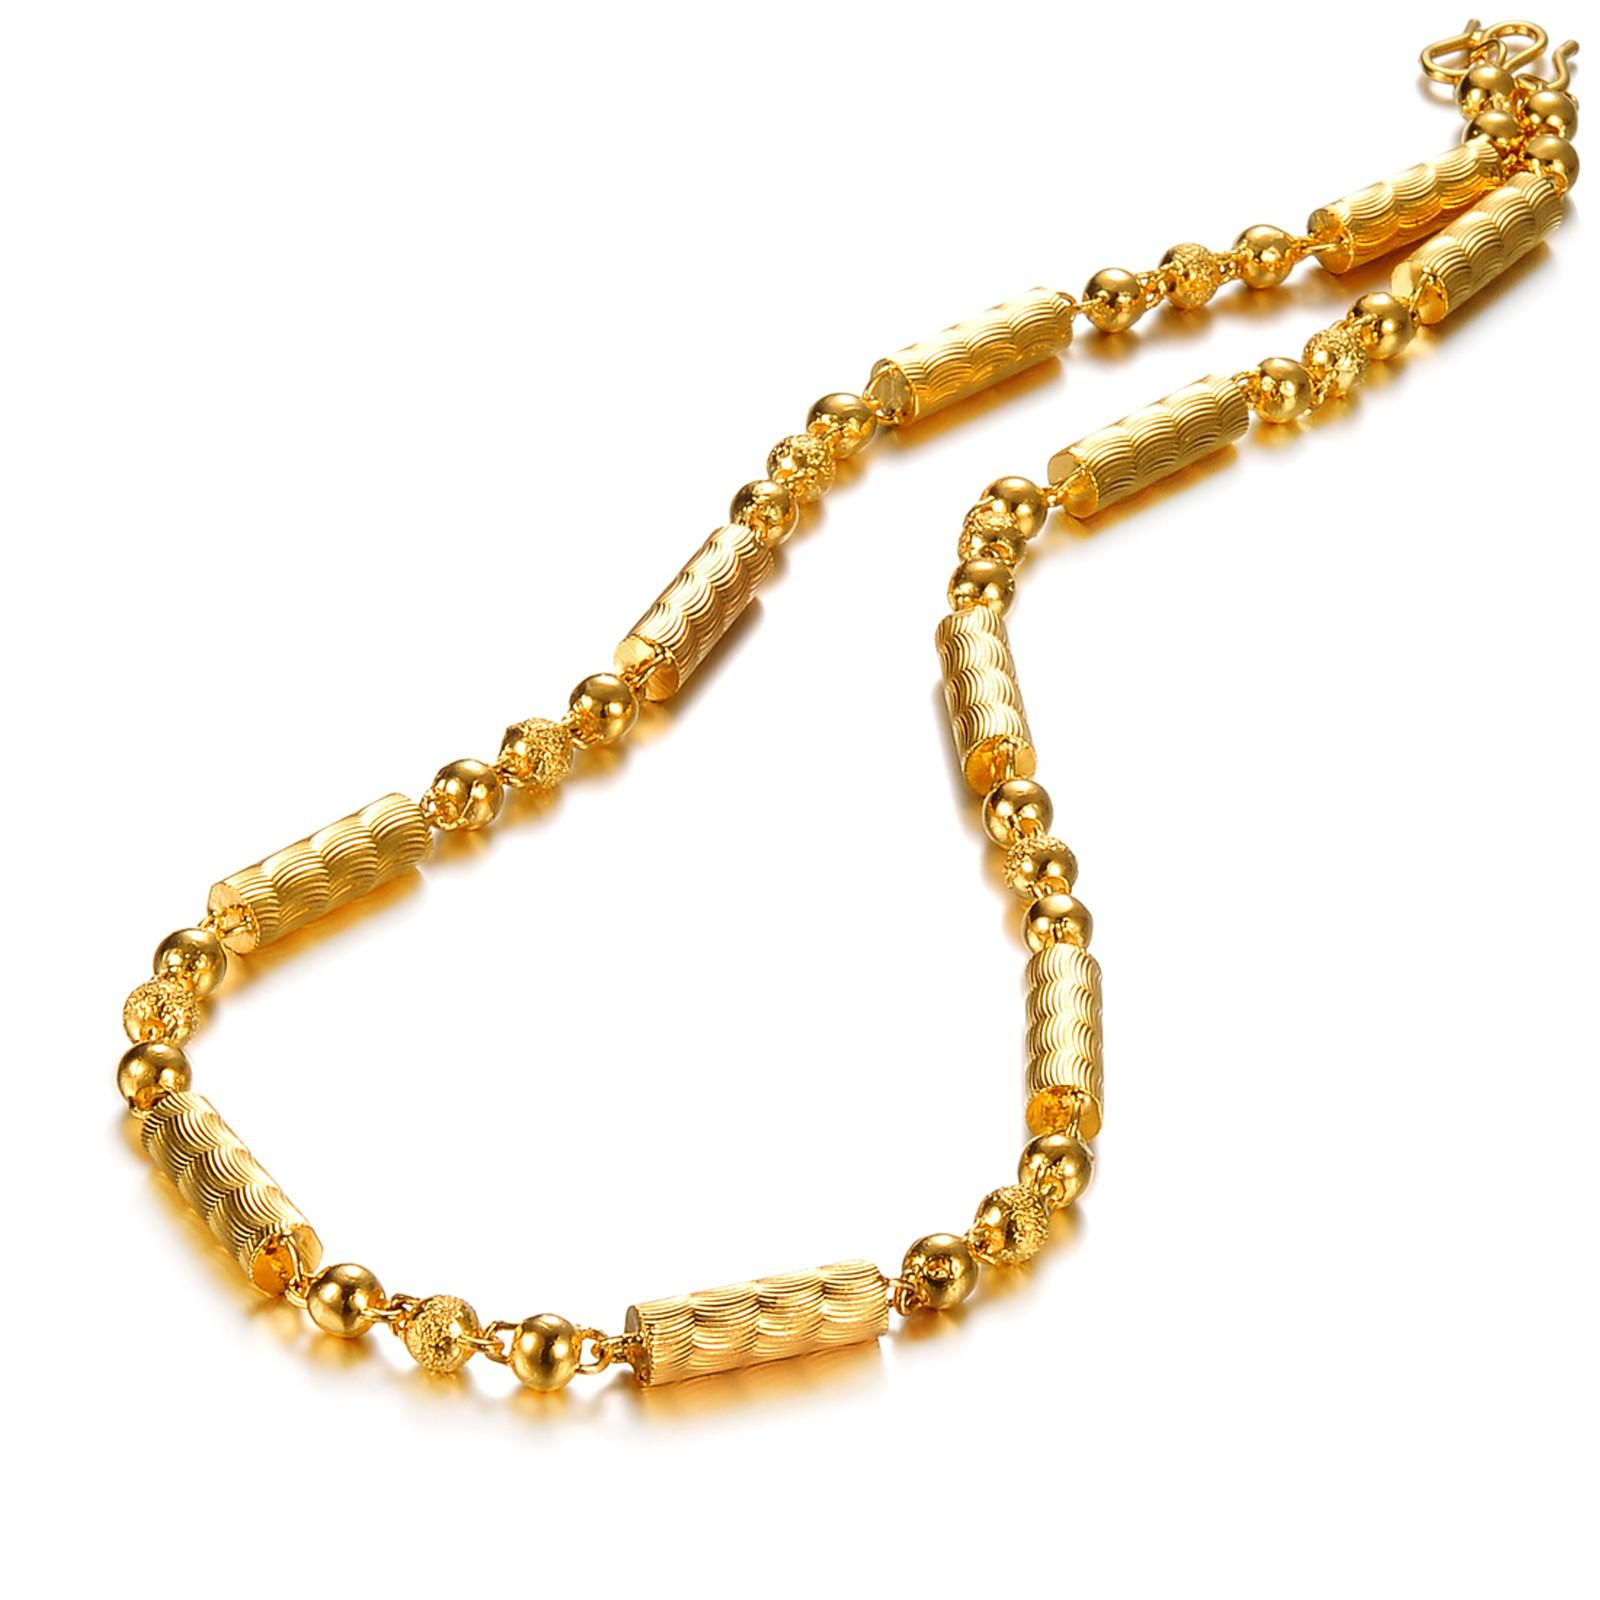 gold com necklace amazon chain inches dp rope jewelry italian plated